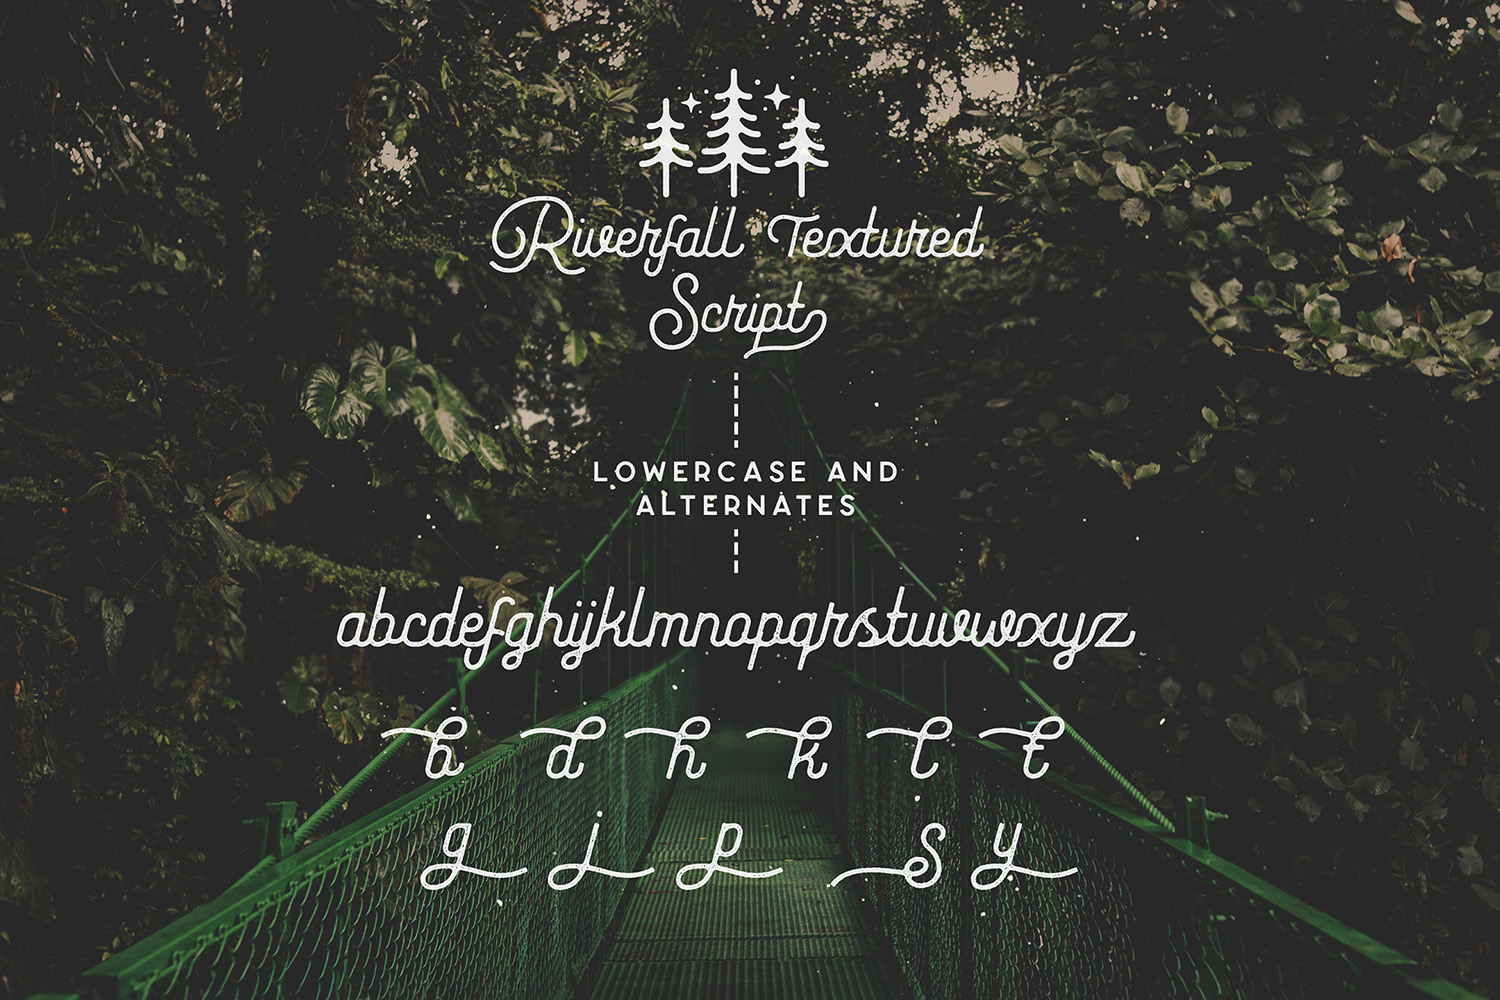 Riverfall Semi Rounded Textured Typeface Ver.2 example image 9